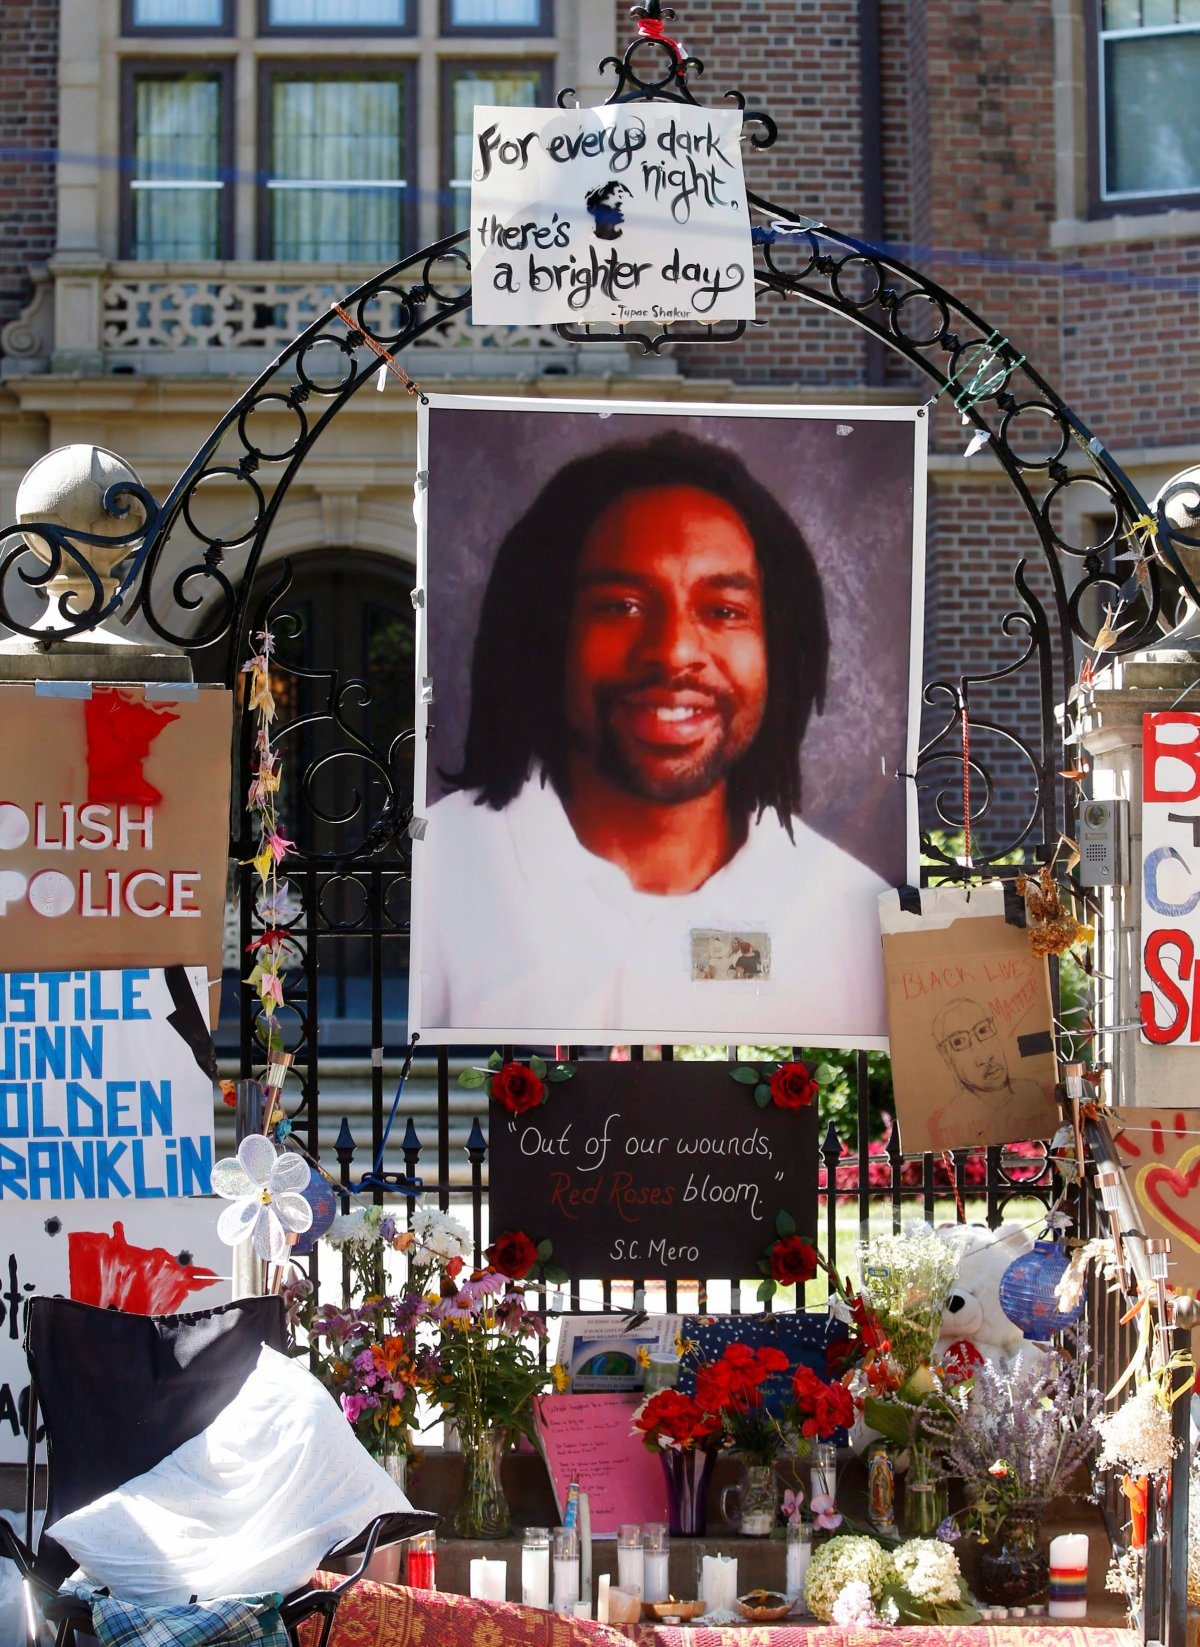 In this July 25, 2016, file photo, a memorial including a photo of Philando Castile adorns the gate to the governor's residence where protesters demonstrated in St. Paul, Minn., against the July 6 shooting death of Castile by St. Anthony police Officer Jeronimo Yanez during a traffic stop in Falcon Heights, Minn.